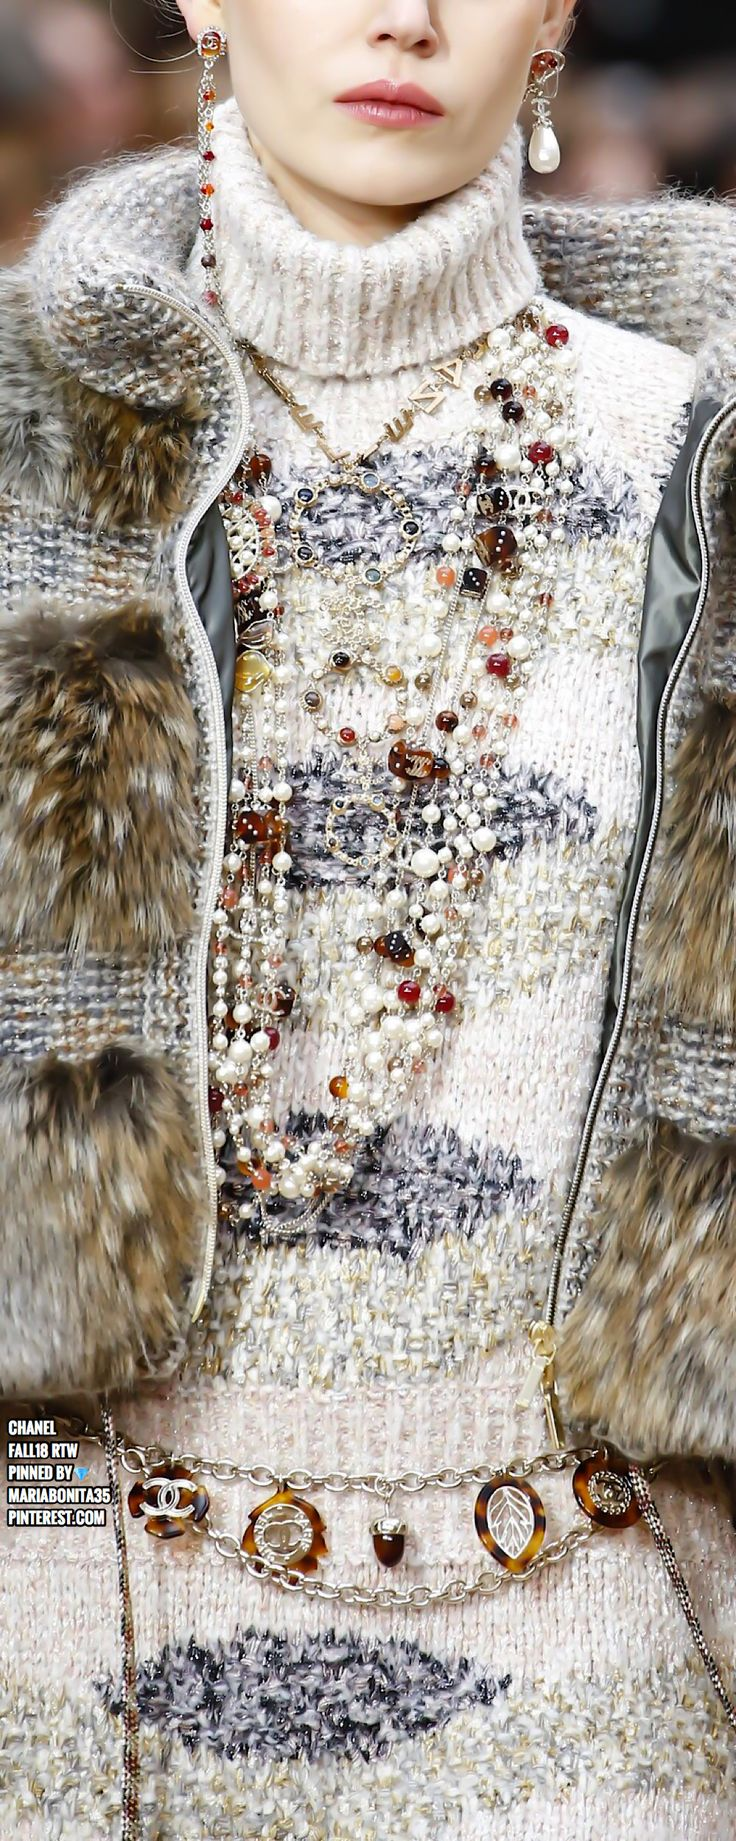 Chanel Fall18 Details